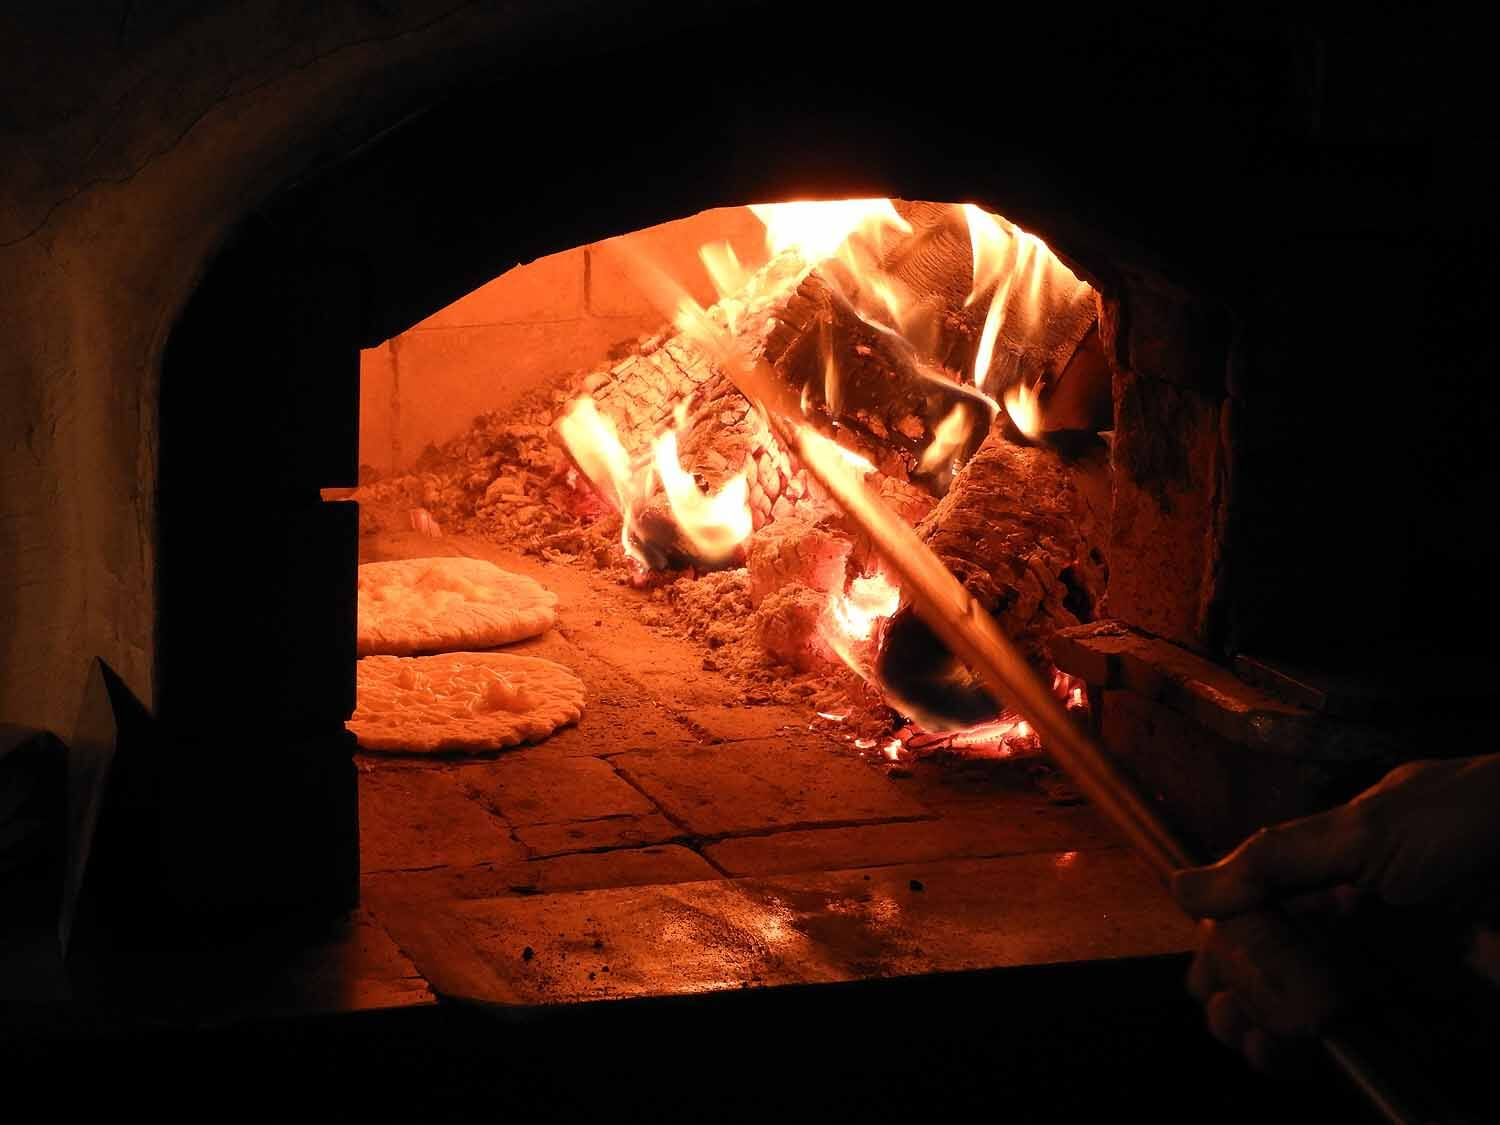 slovenia-lake-bled-woodfire-oven-pizza.jpg